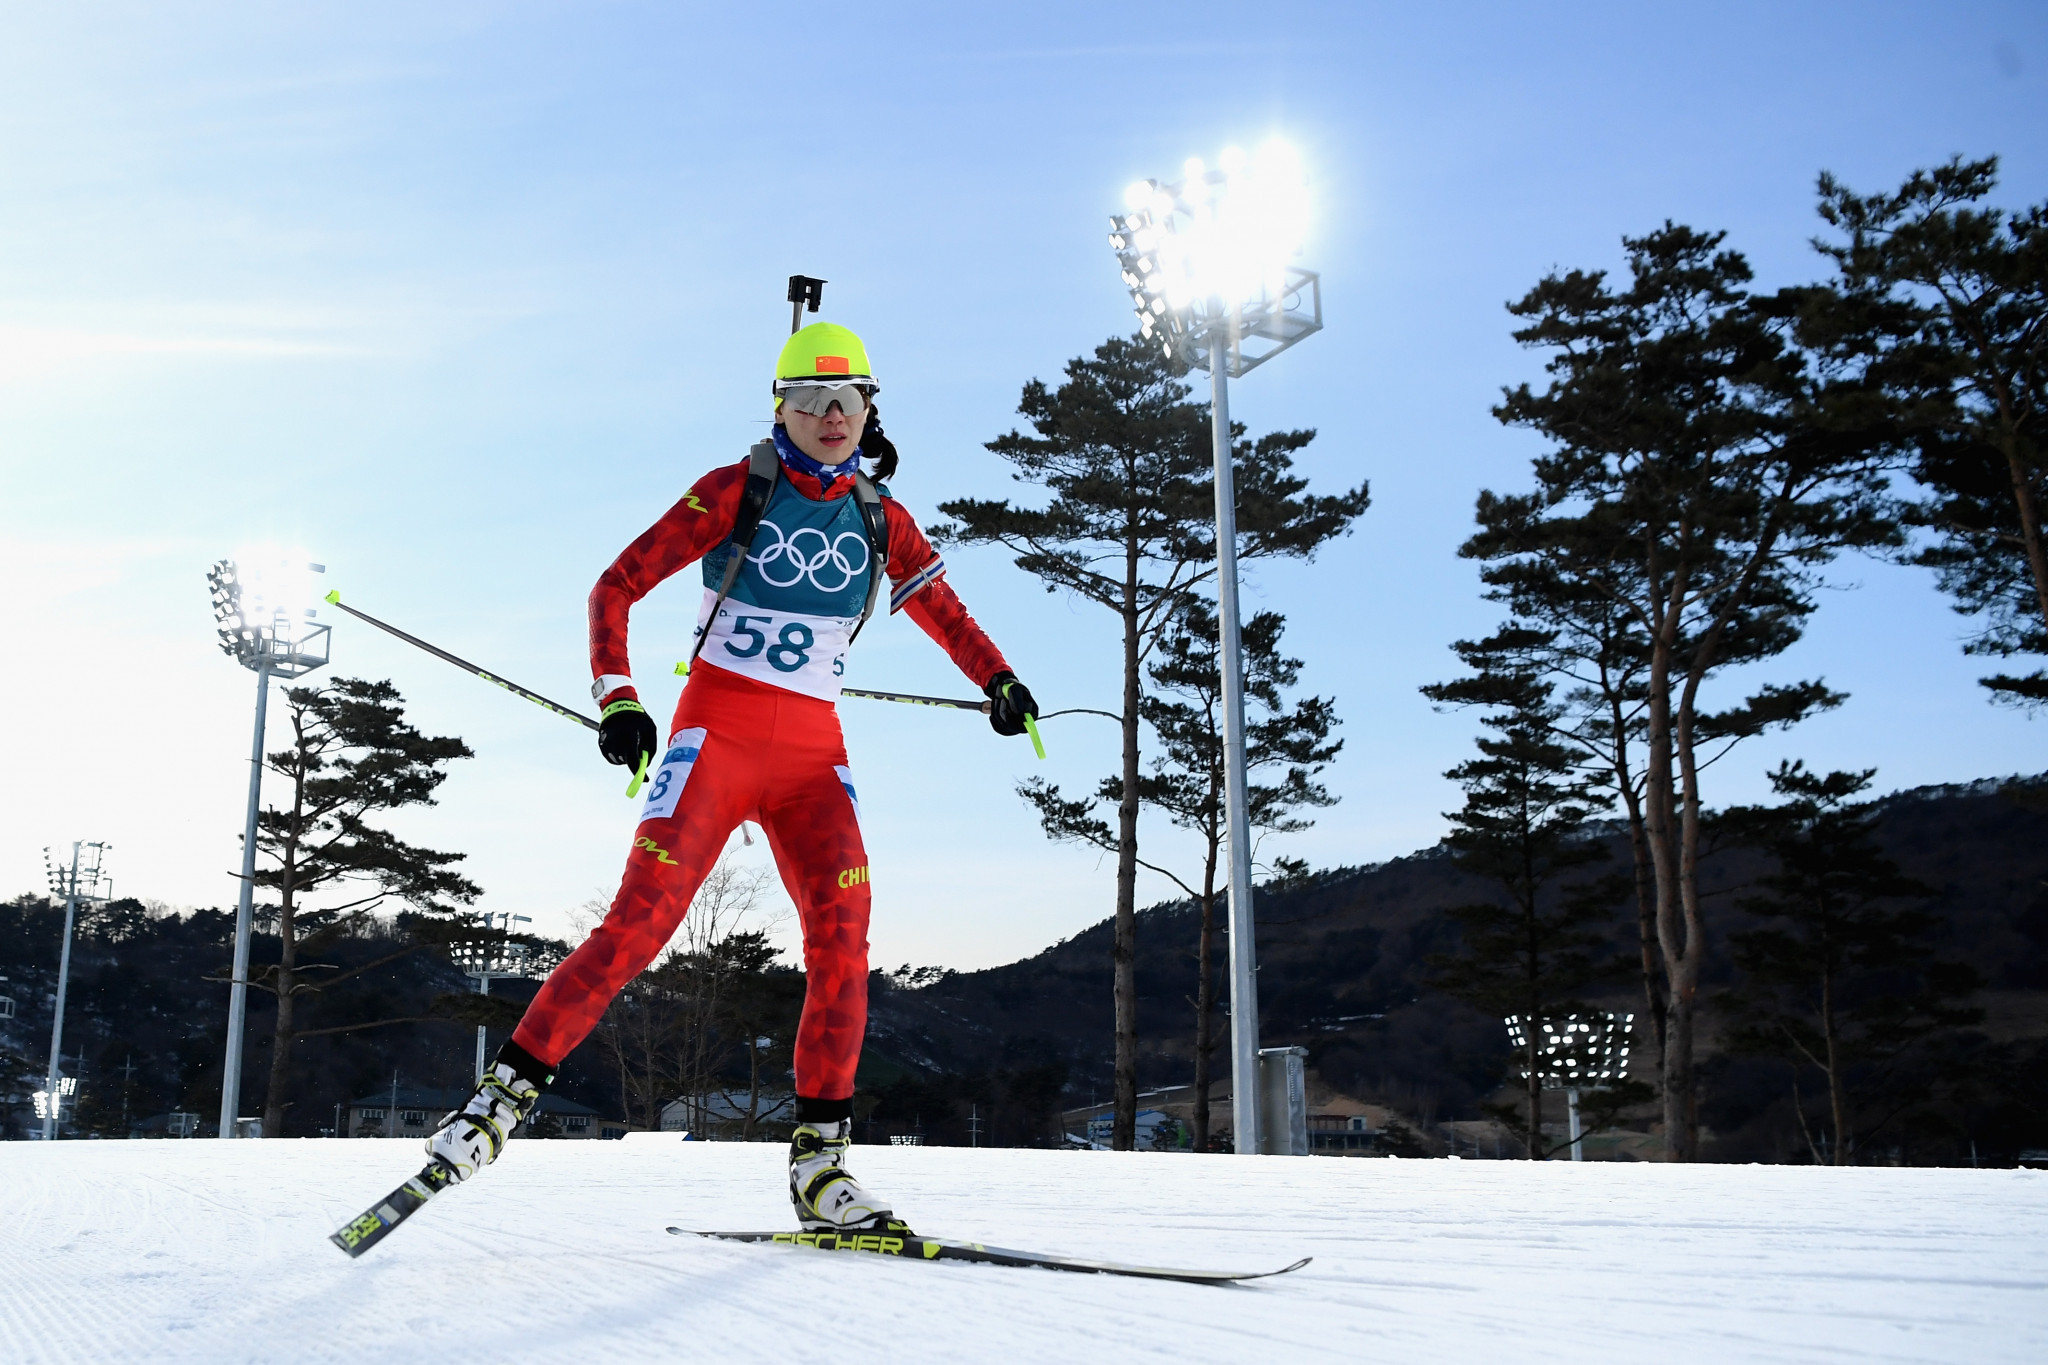 China has little heritage in sports including biathlon  ©Getty Images